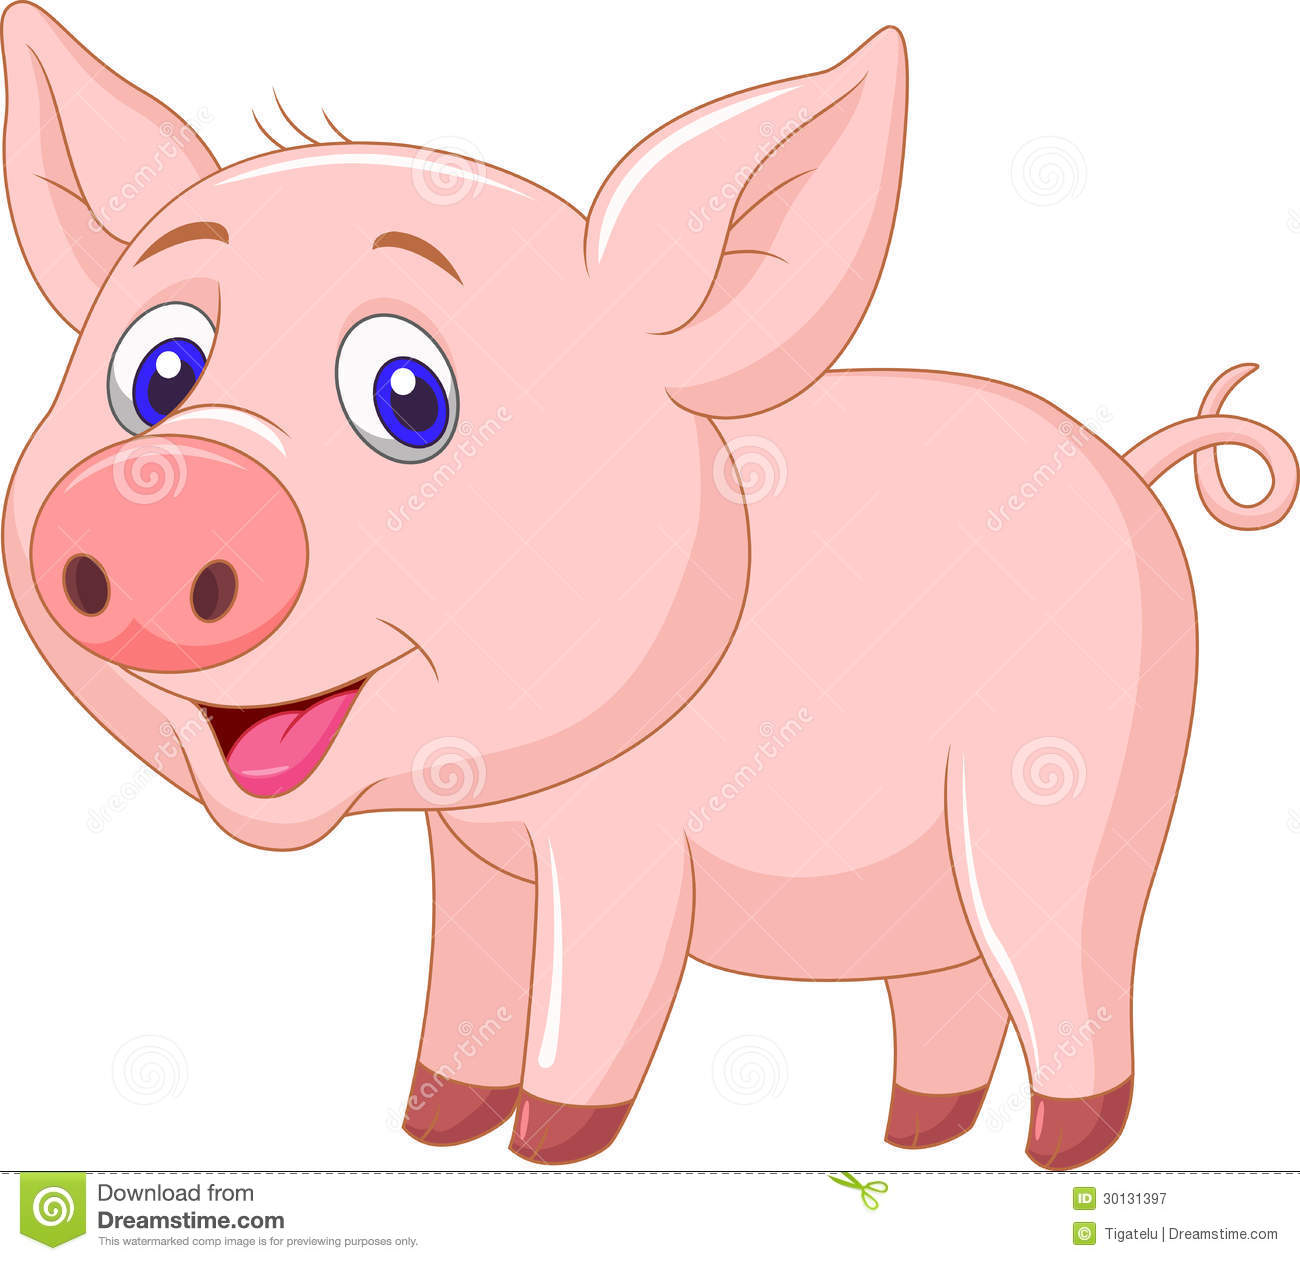 Cute Funny Wallpapers For Lazy Peopke Cute Baby Pig Cartoon Royalty Free Stock Photography